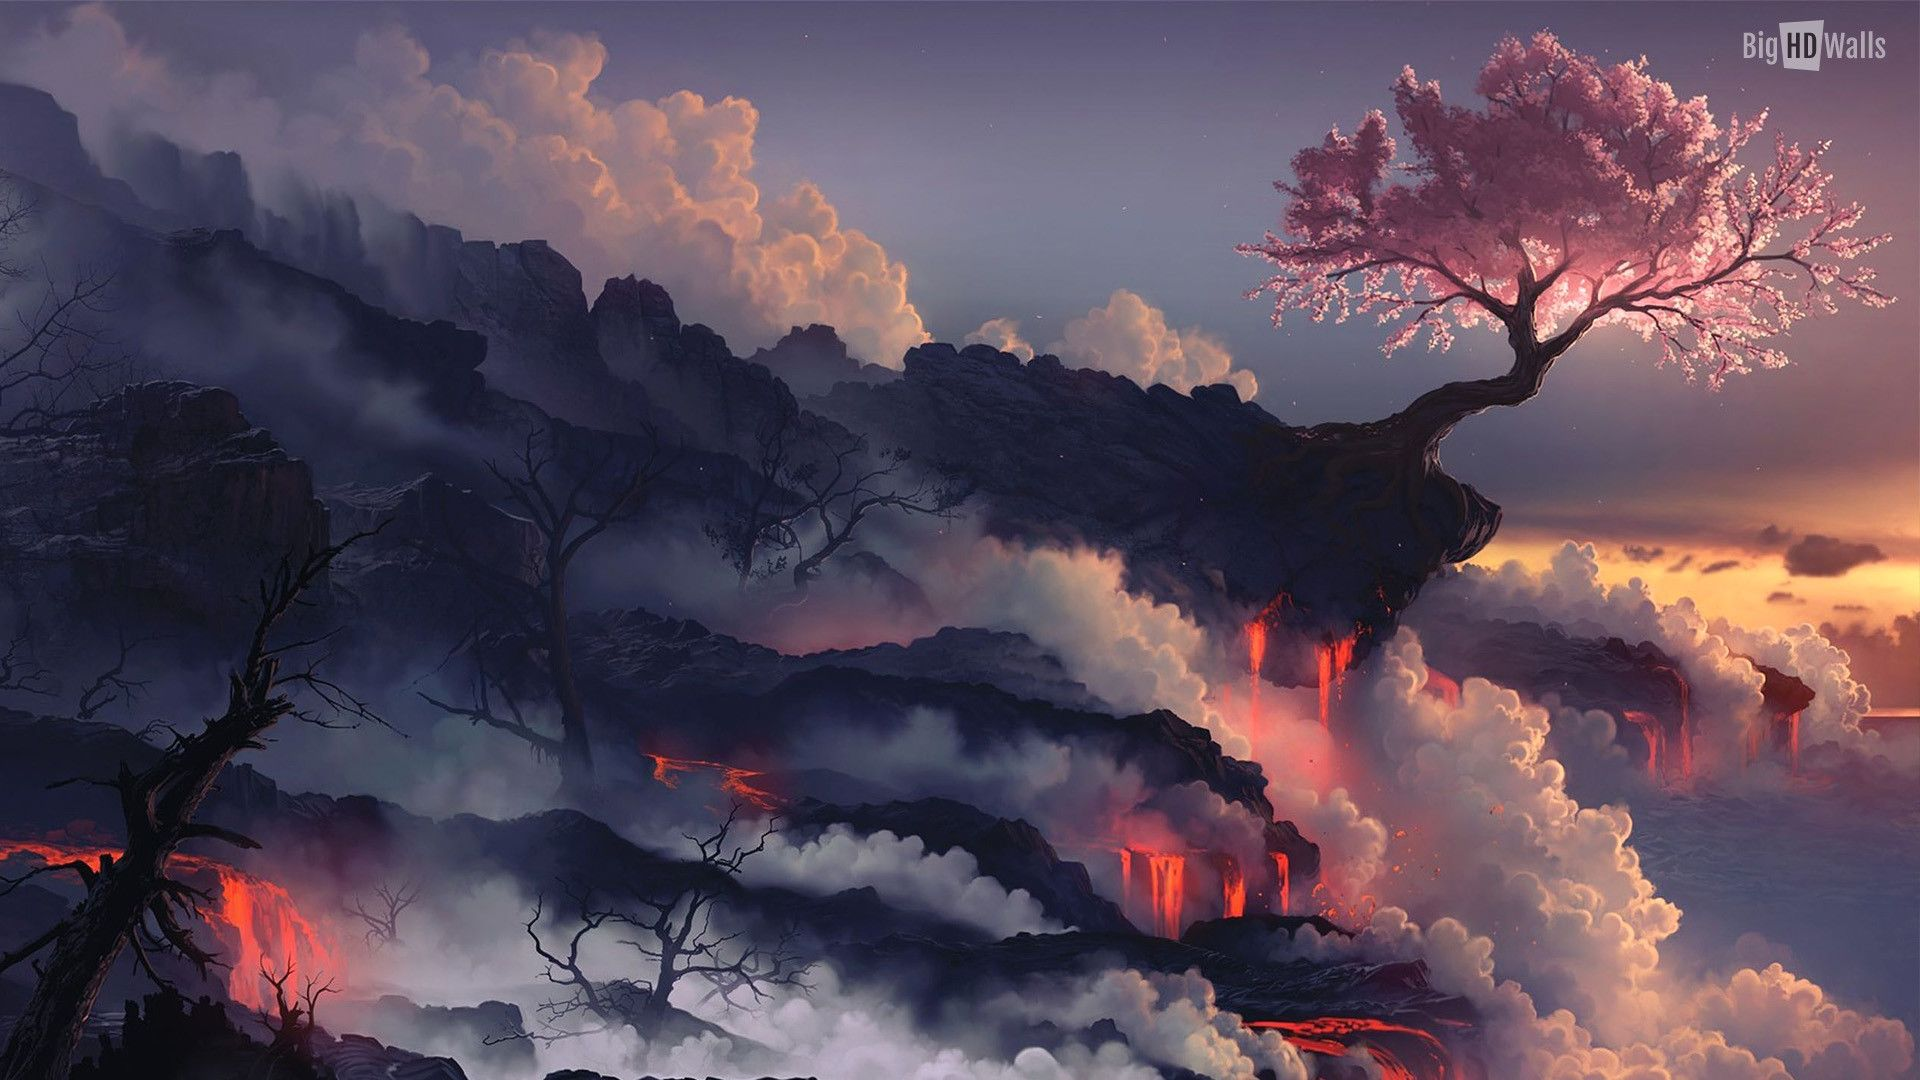 Aesthetic Japanese 1920x1080 Wallpapers - Wallpaper Cave